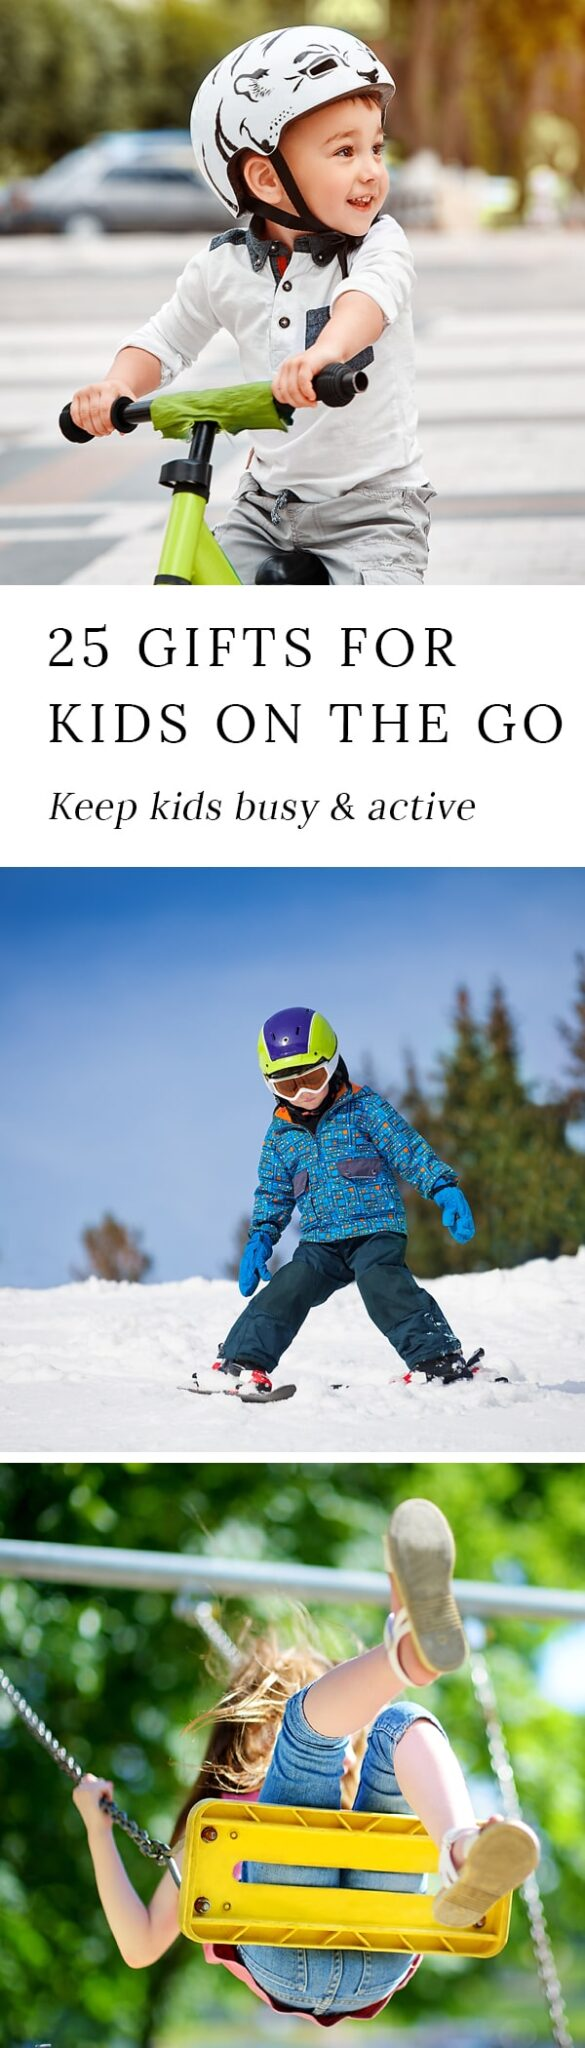 Are you shopping for a kid who is always on the go? If so, we've got you covered! Discover 25 unique gifts that are perfect for kids who love to move.